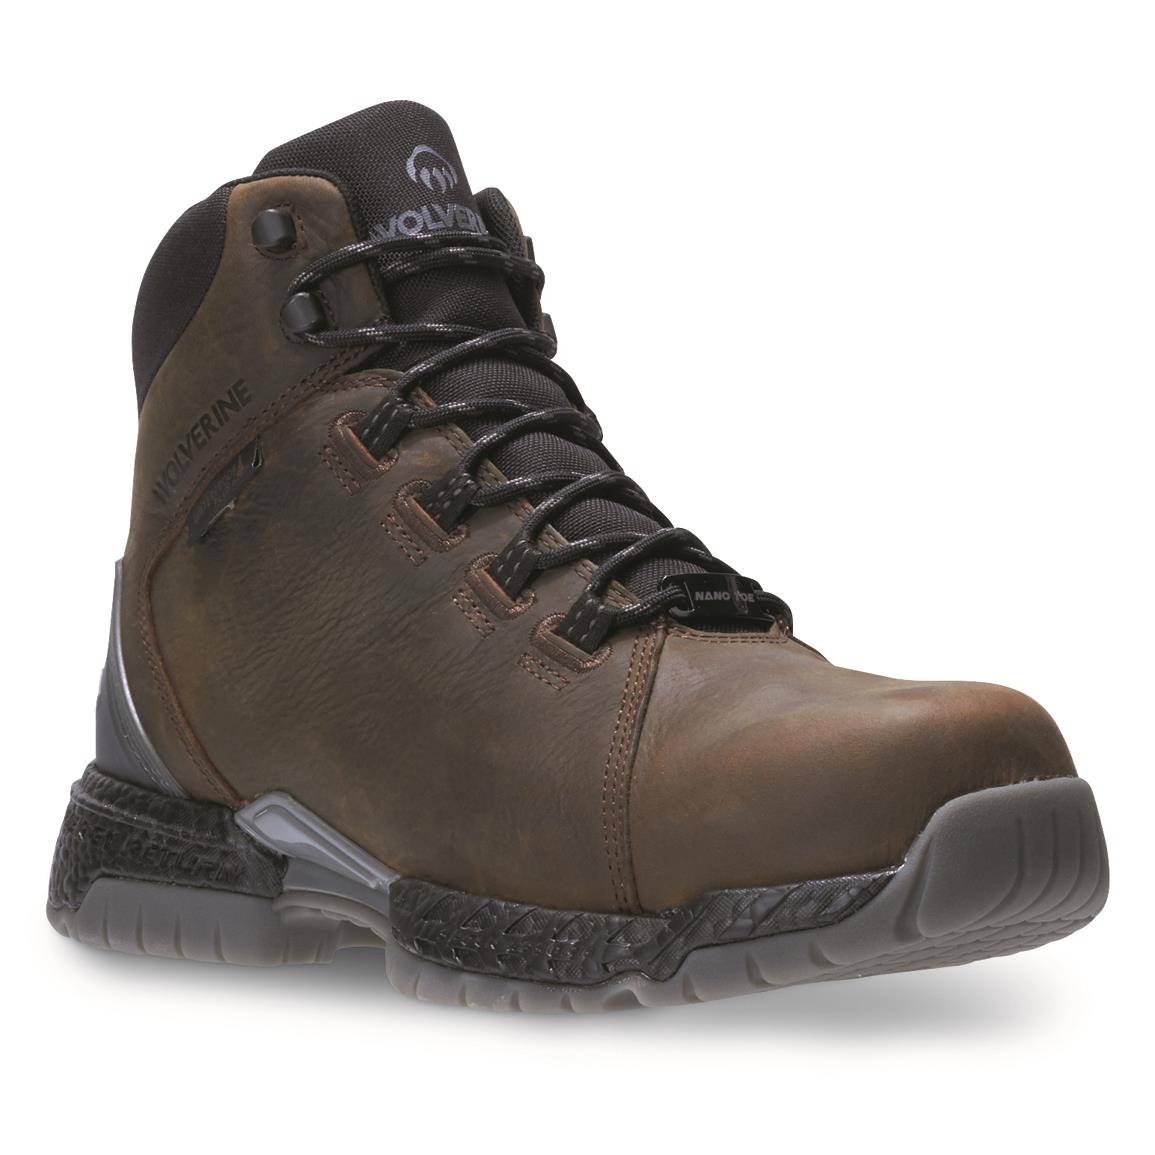 Wolverine Men's I-90 Rush Waterproof Work Boots, Dark Coffee